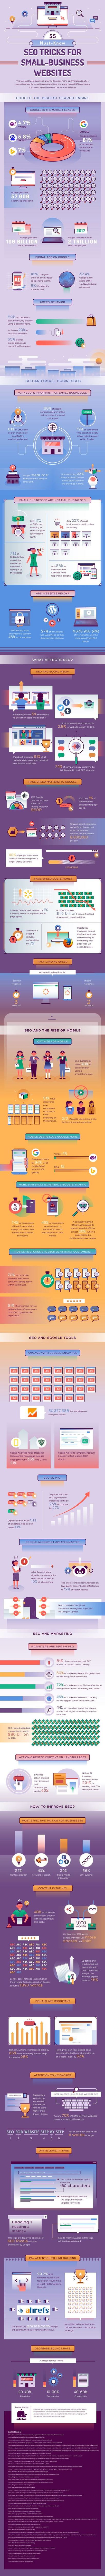 55 Must-Know SEO Tricks for Business Websites (Infographic)